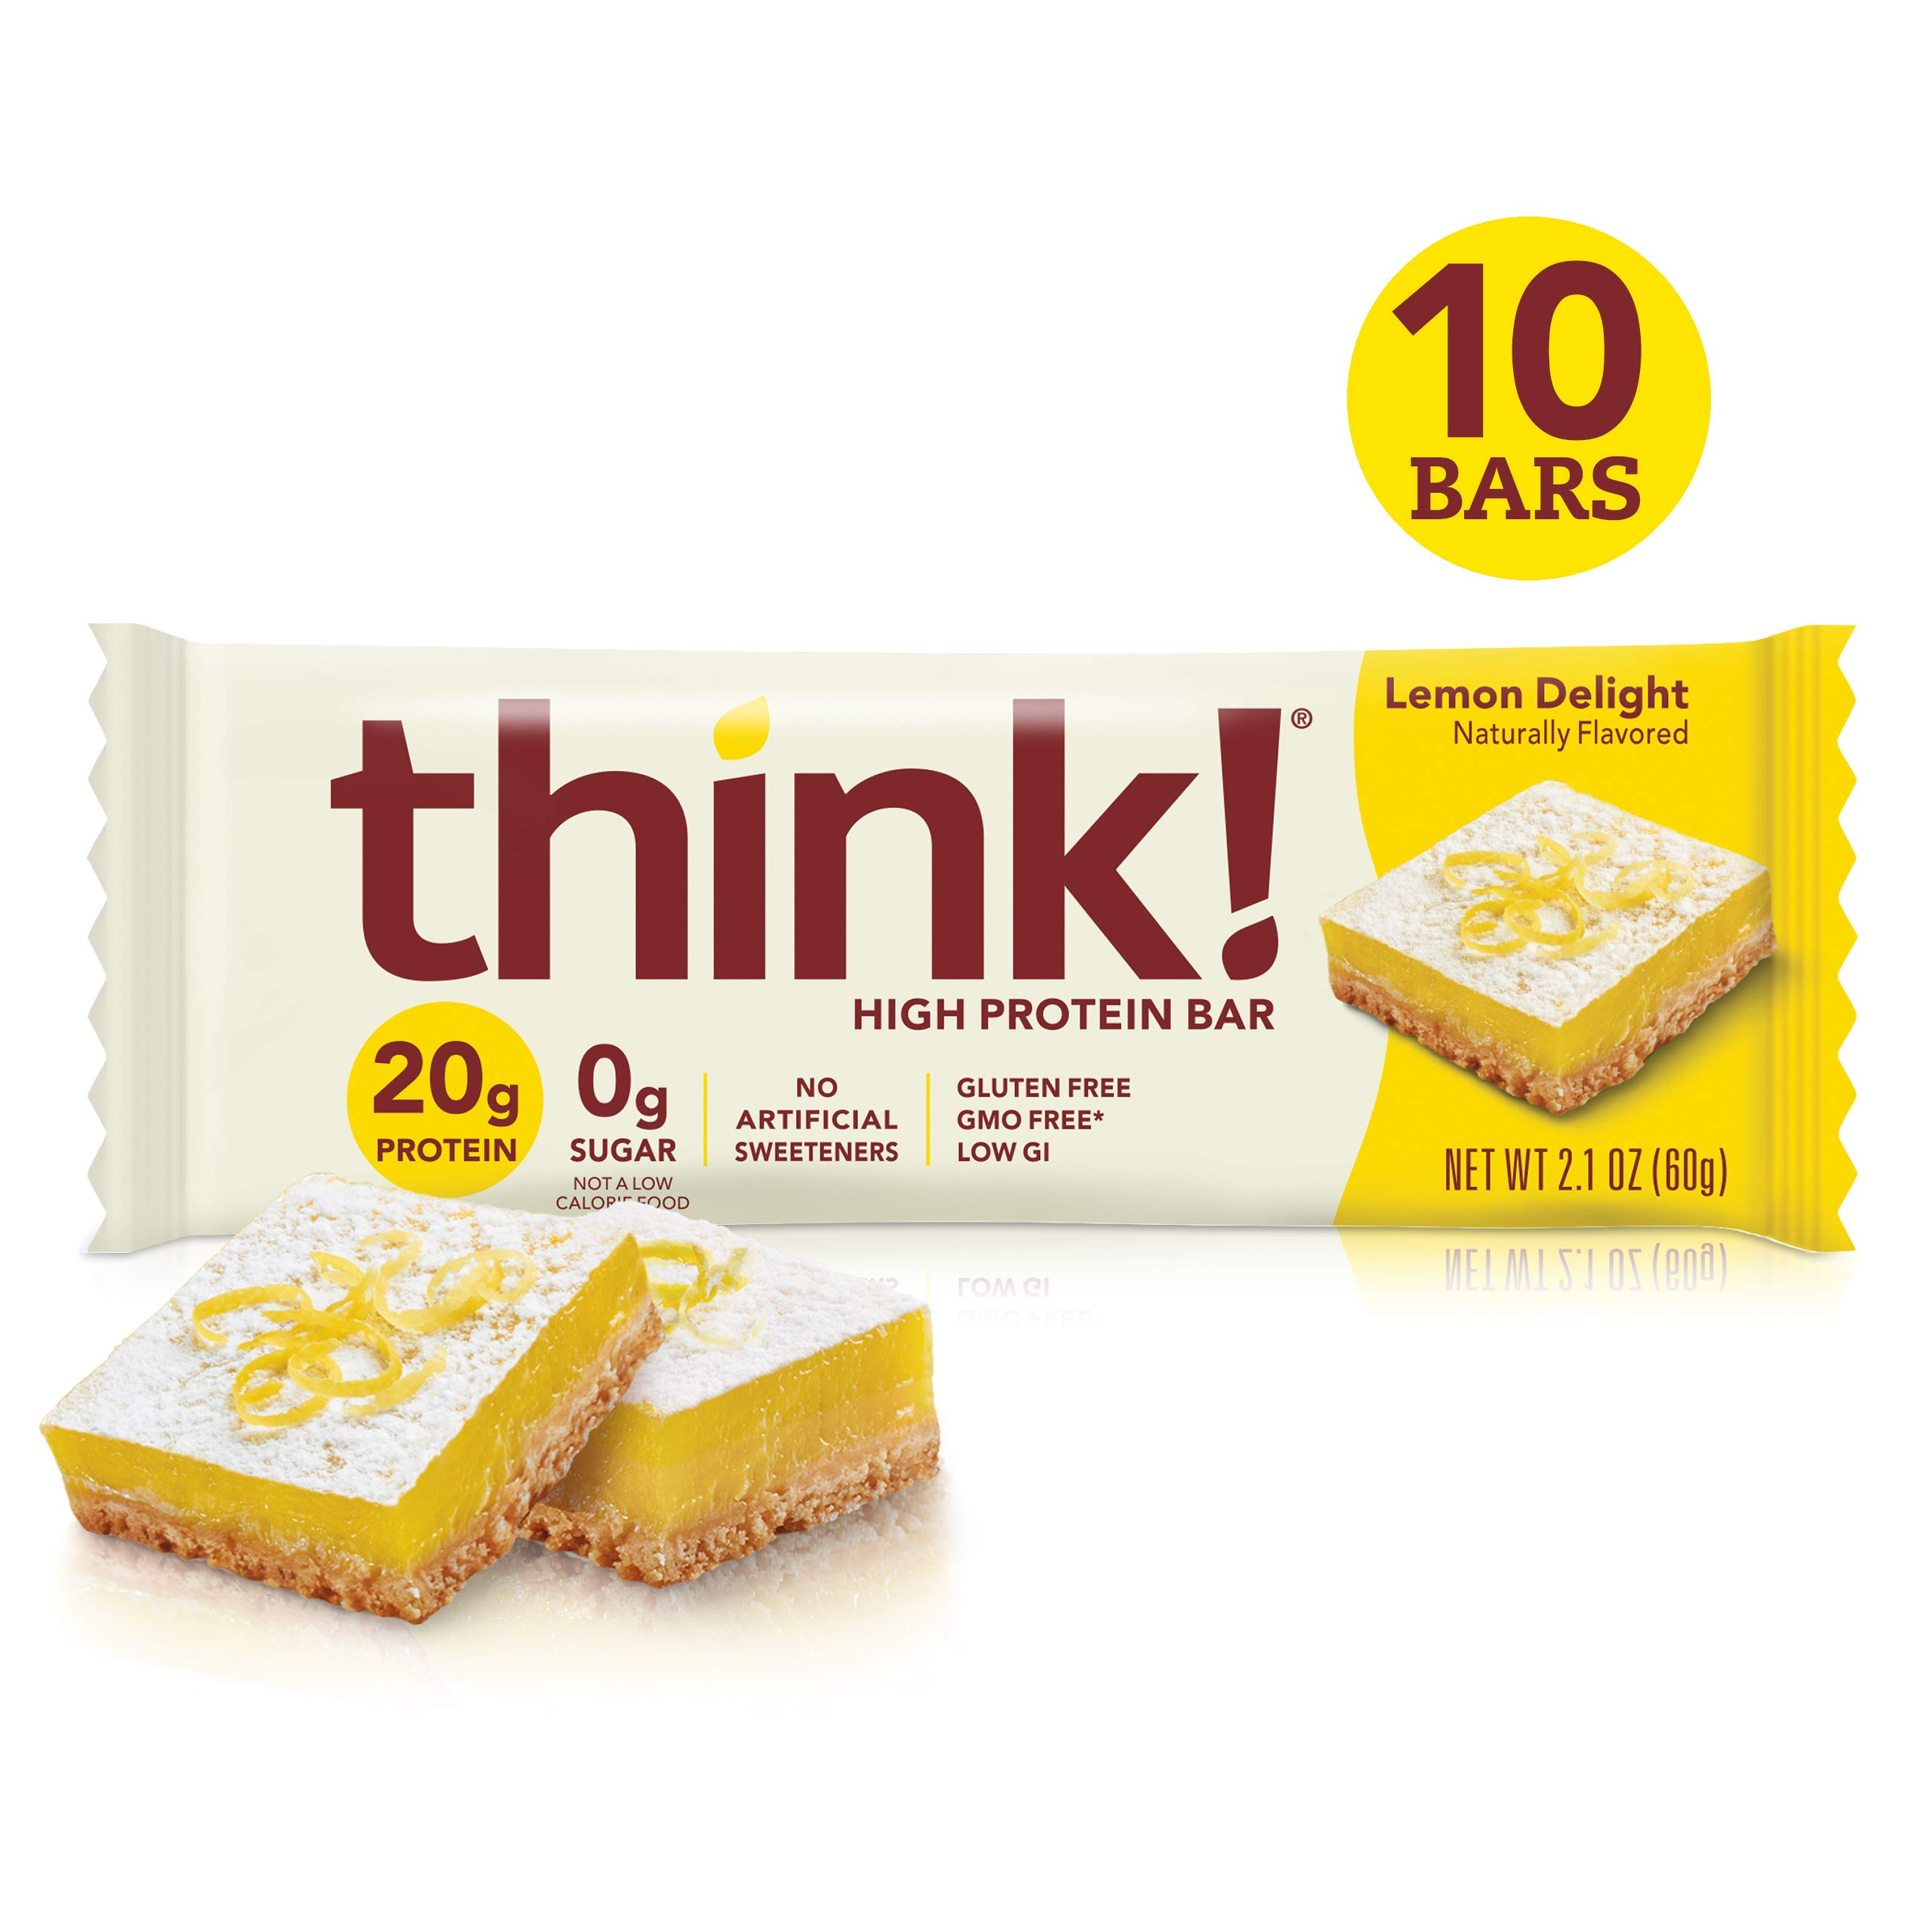 think! (thinkThin) High Protein Bars - Lemon Delight, 20g Protein, 0g Sugar, No Artificial Sweeteners**, Gluten Free, GMO Free*,2.1 Ounce (10 Count) - Packaging May Vary by think!